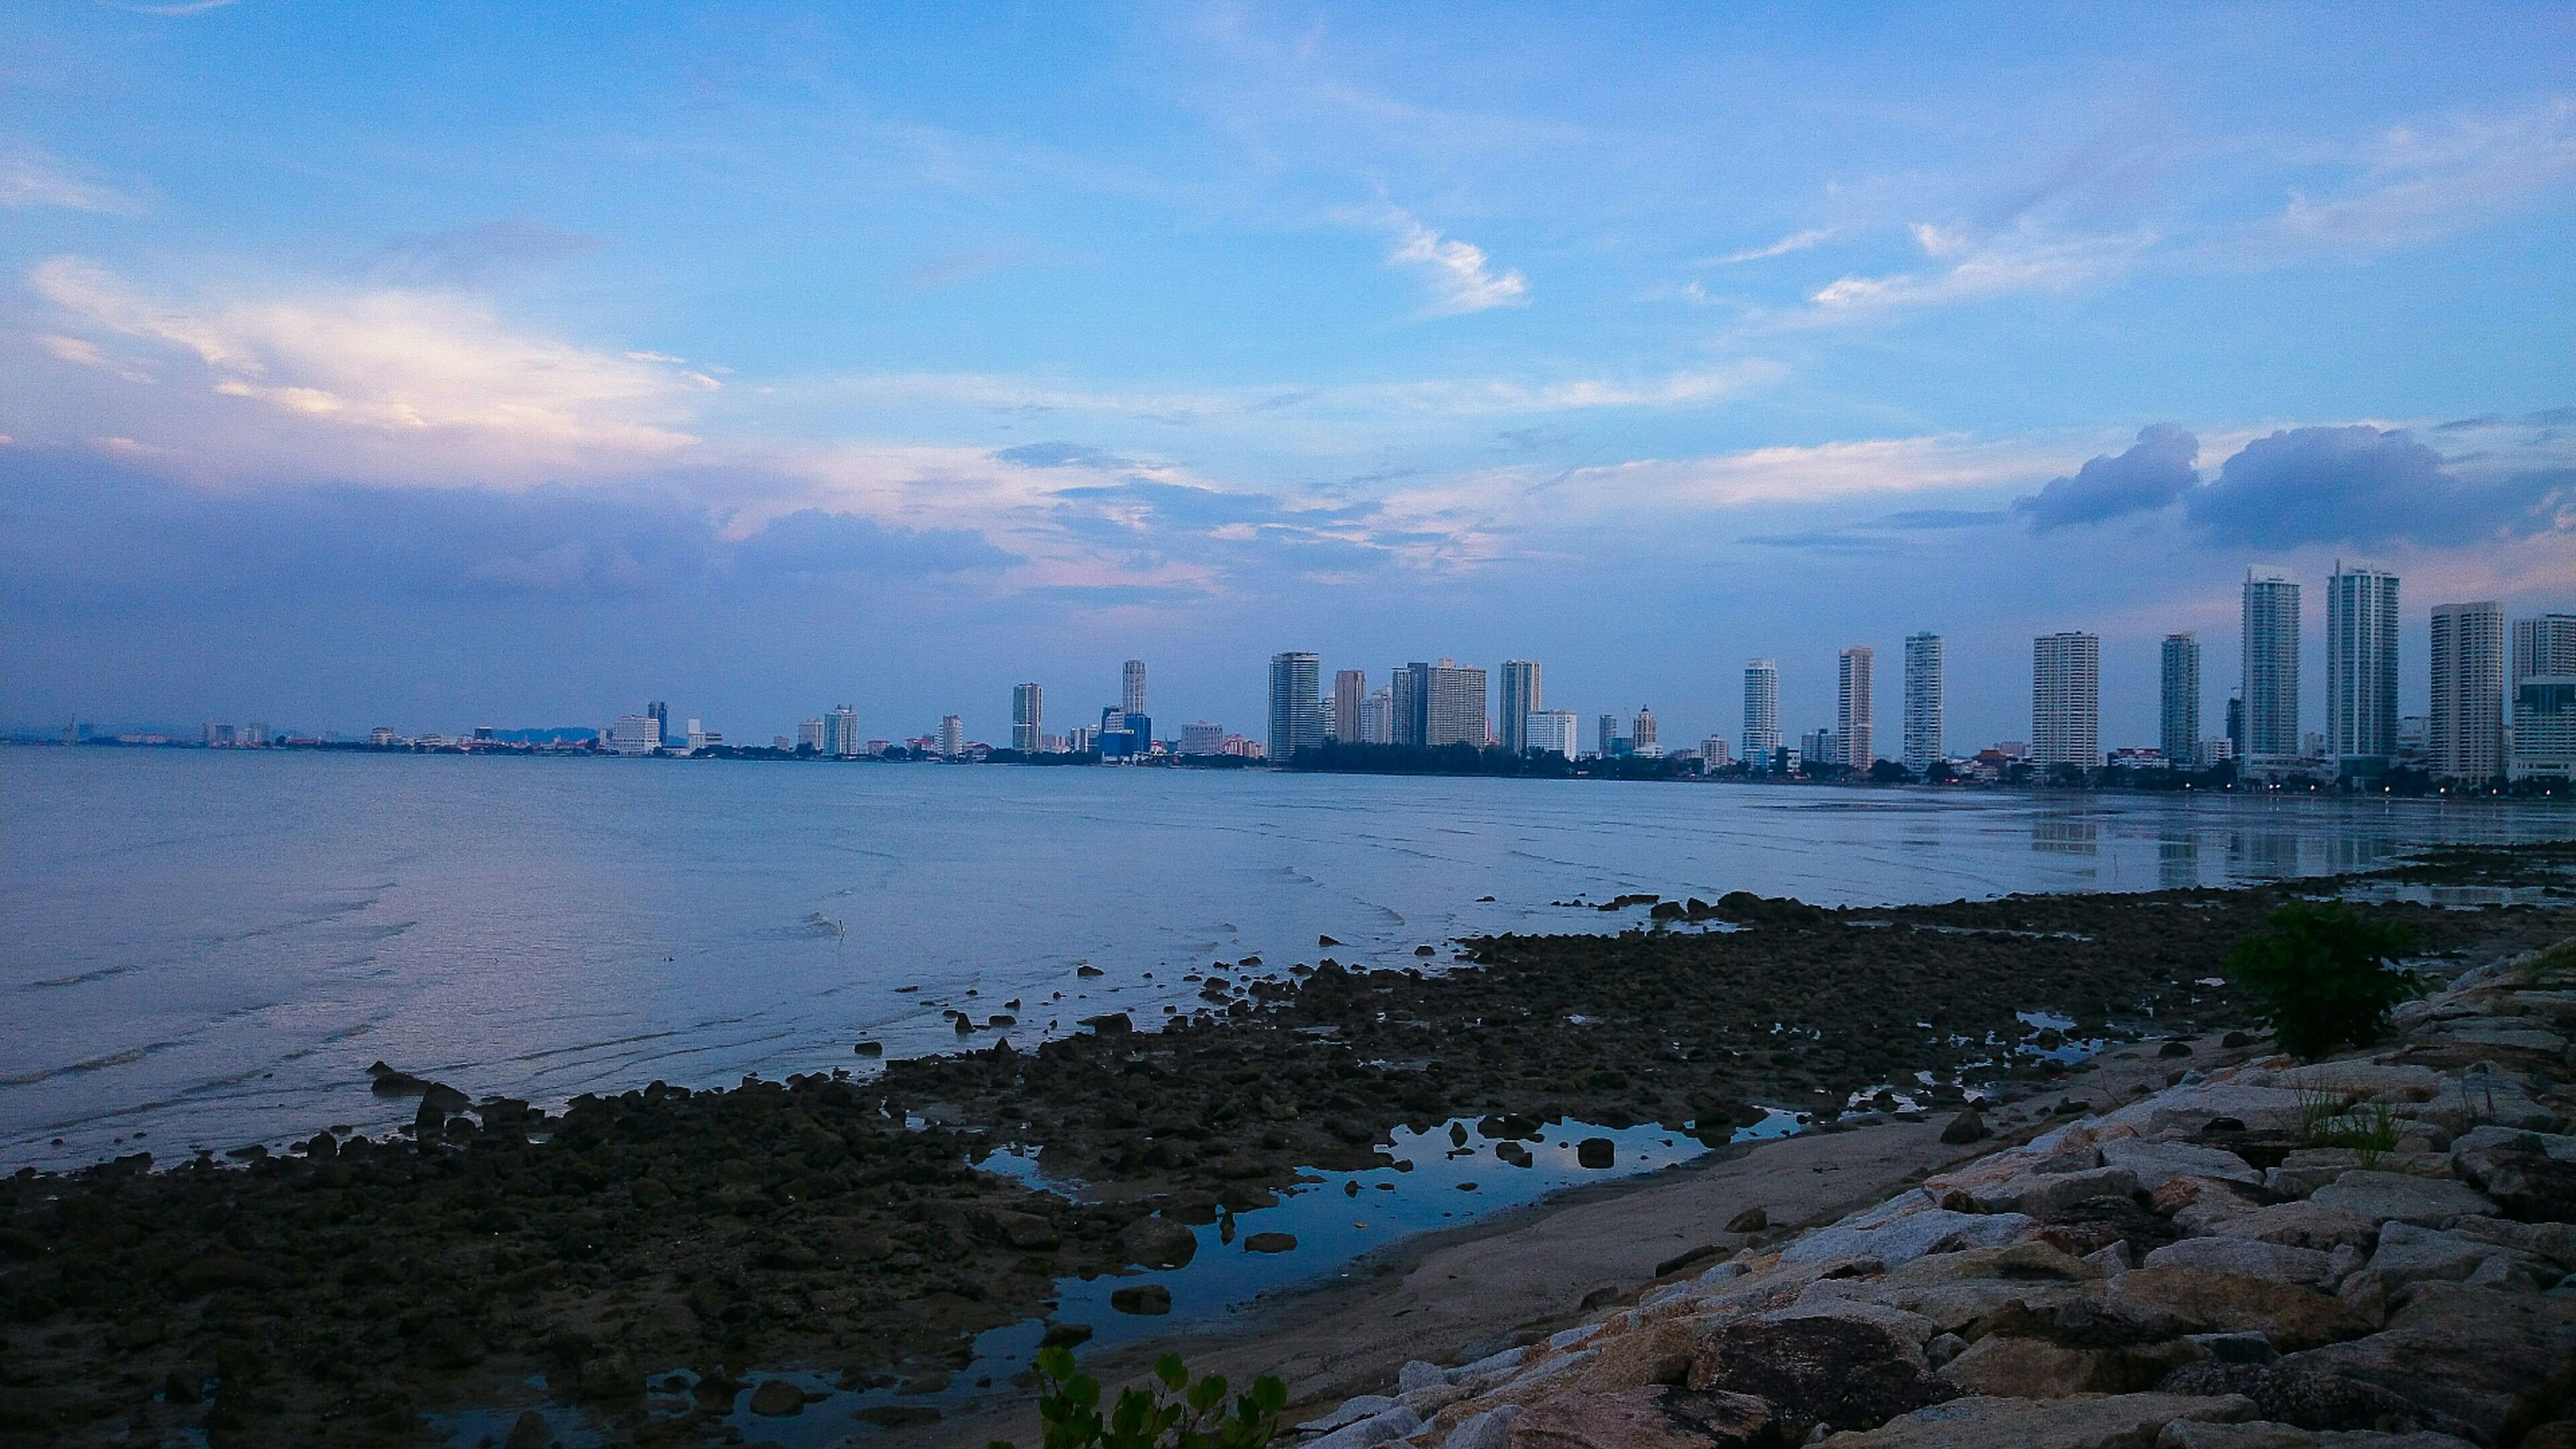 building exterior, water, architecture, built structure, city, sky, sea, cityscape, cloud - sky, urban skyline, skyscraper, river, beach, high angle view, nature, tower, residential district, shore, outdoors, blue